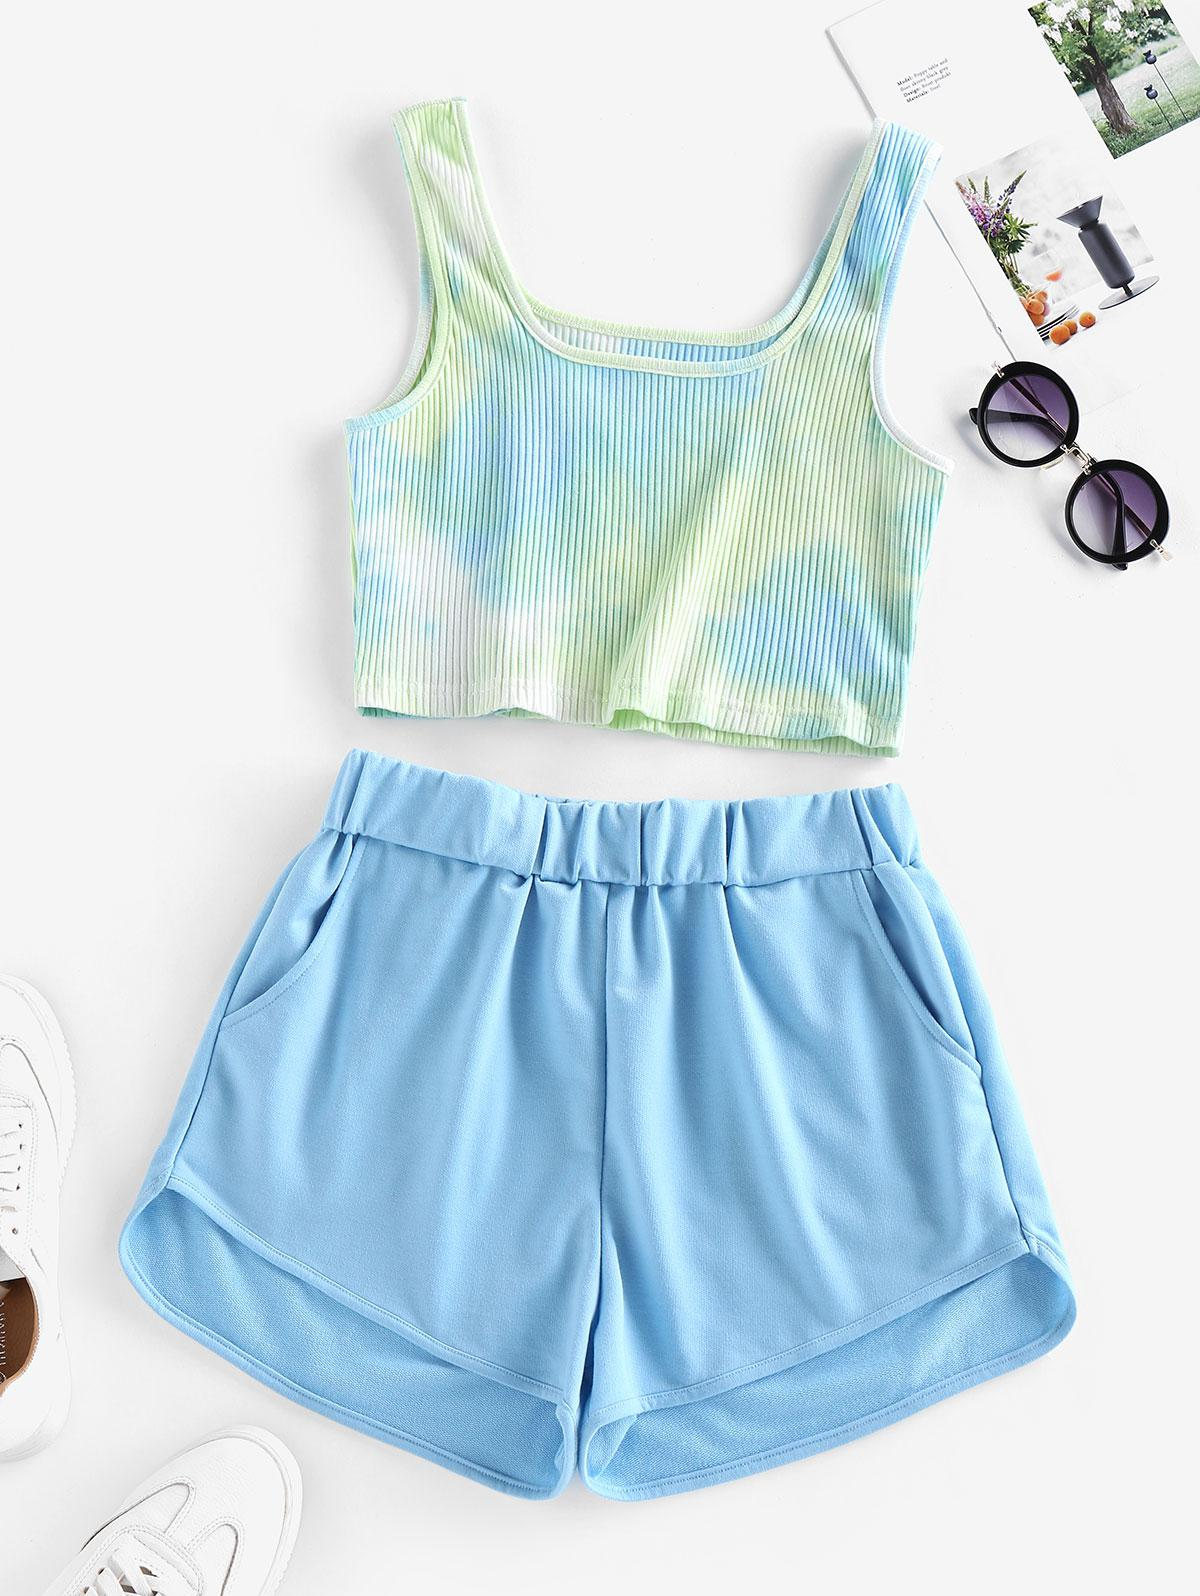 ZAFUL Tie Dye Two Piece Set